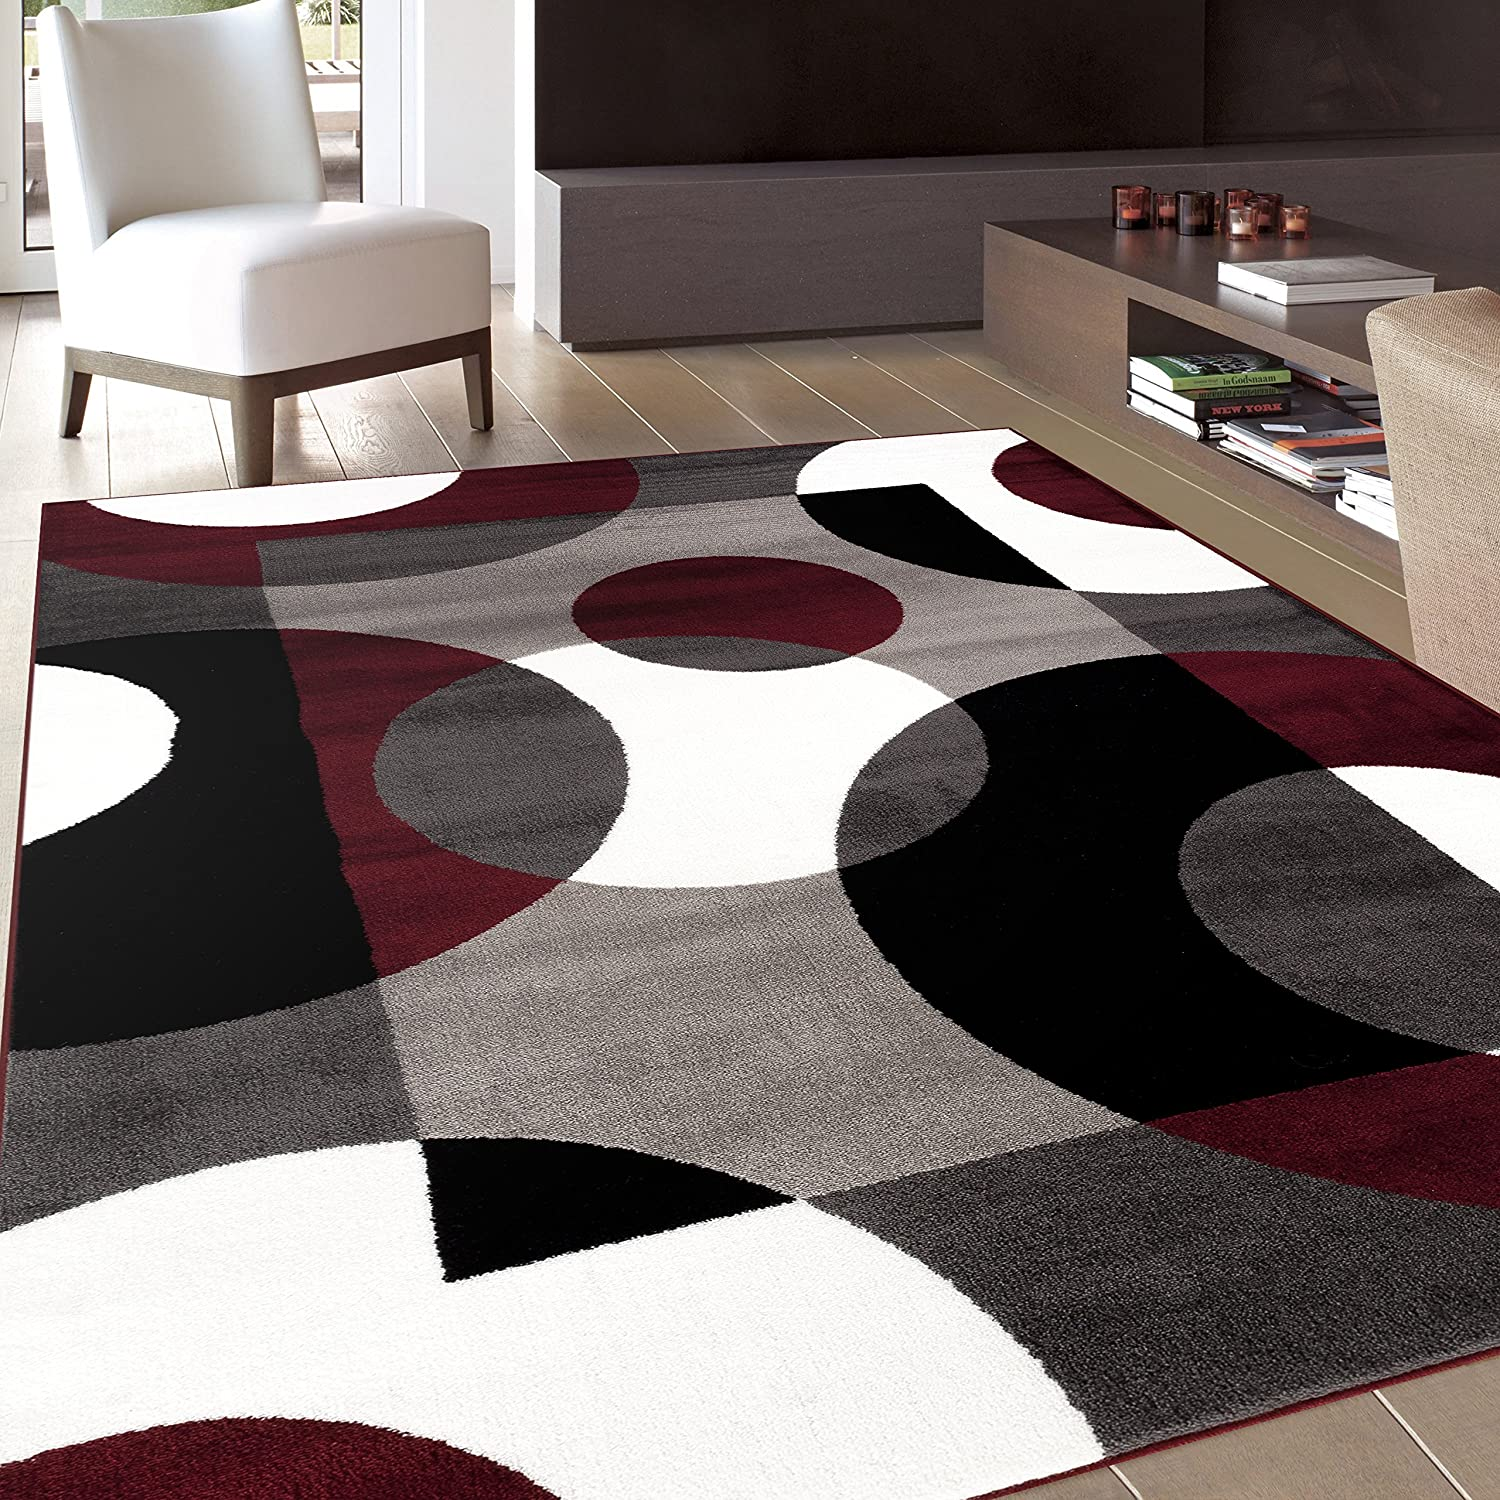 Top 5 Living Room Rugs: Buying Guide & Reviews 16